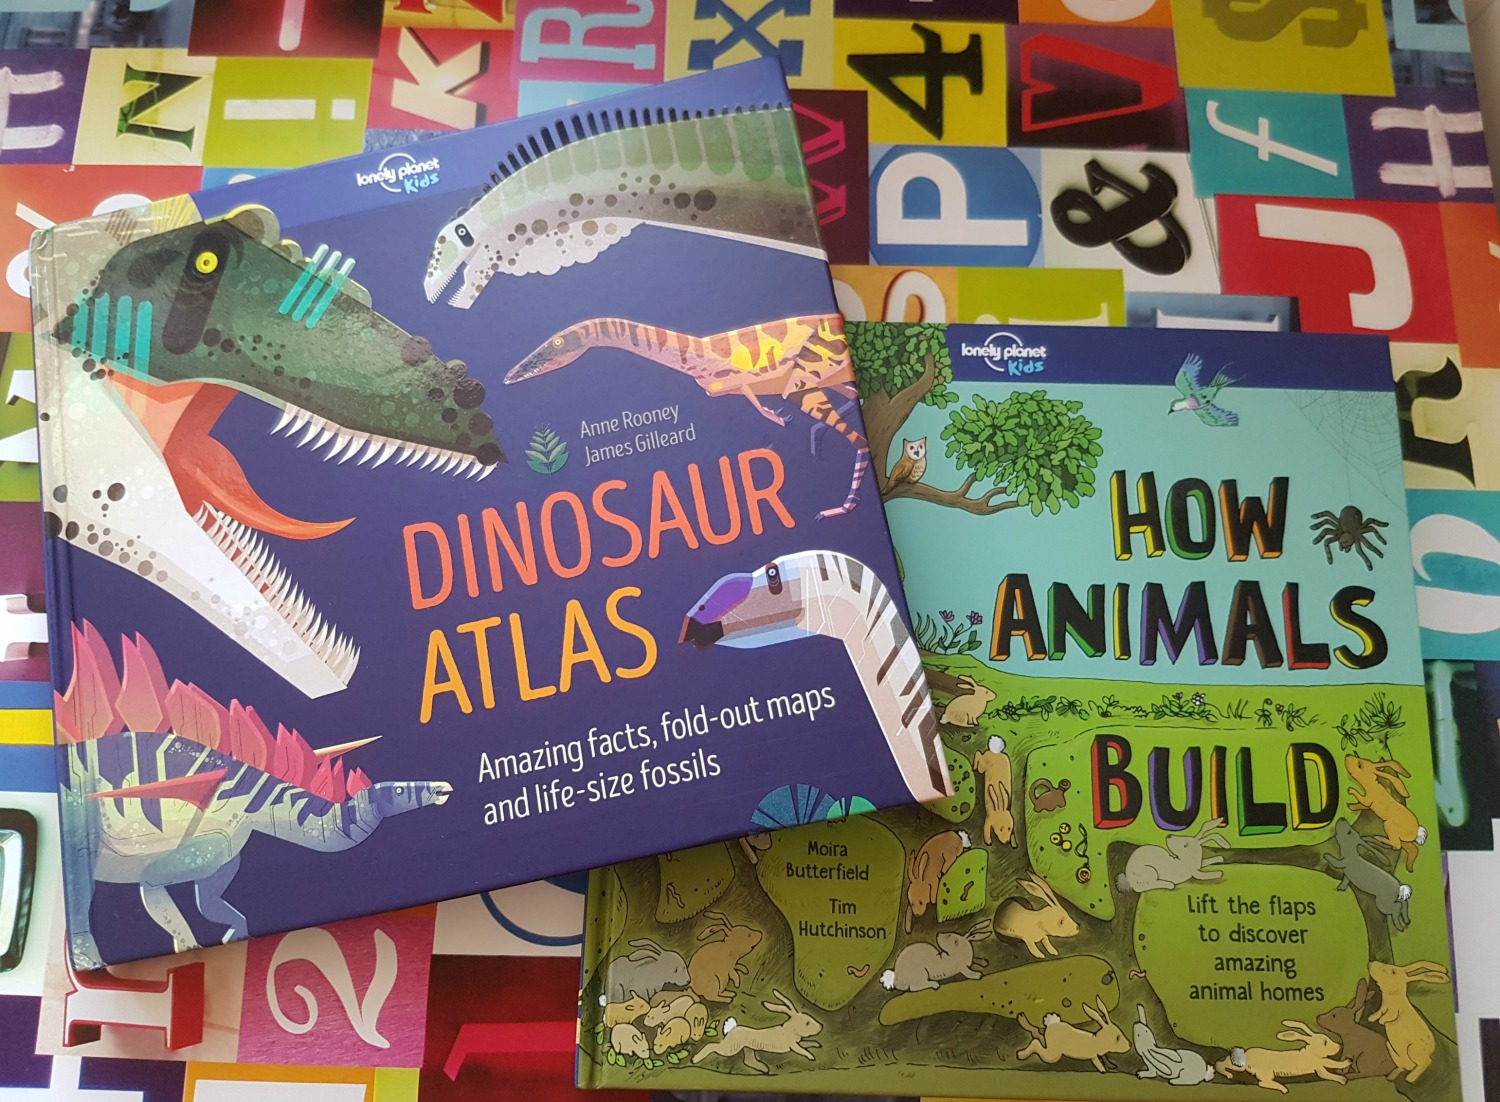 Cover of the Lonely Planet Kids book Dinosaur Atlas and How Animals Build - one of my November travel essentials